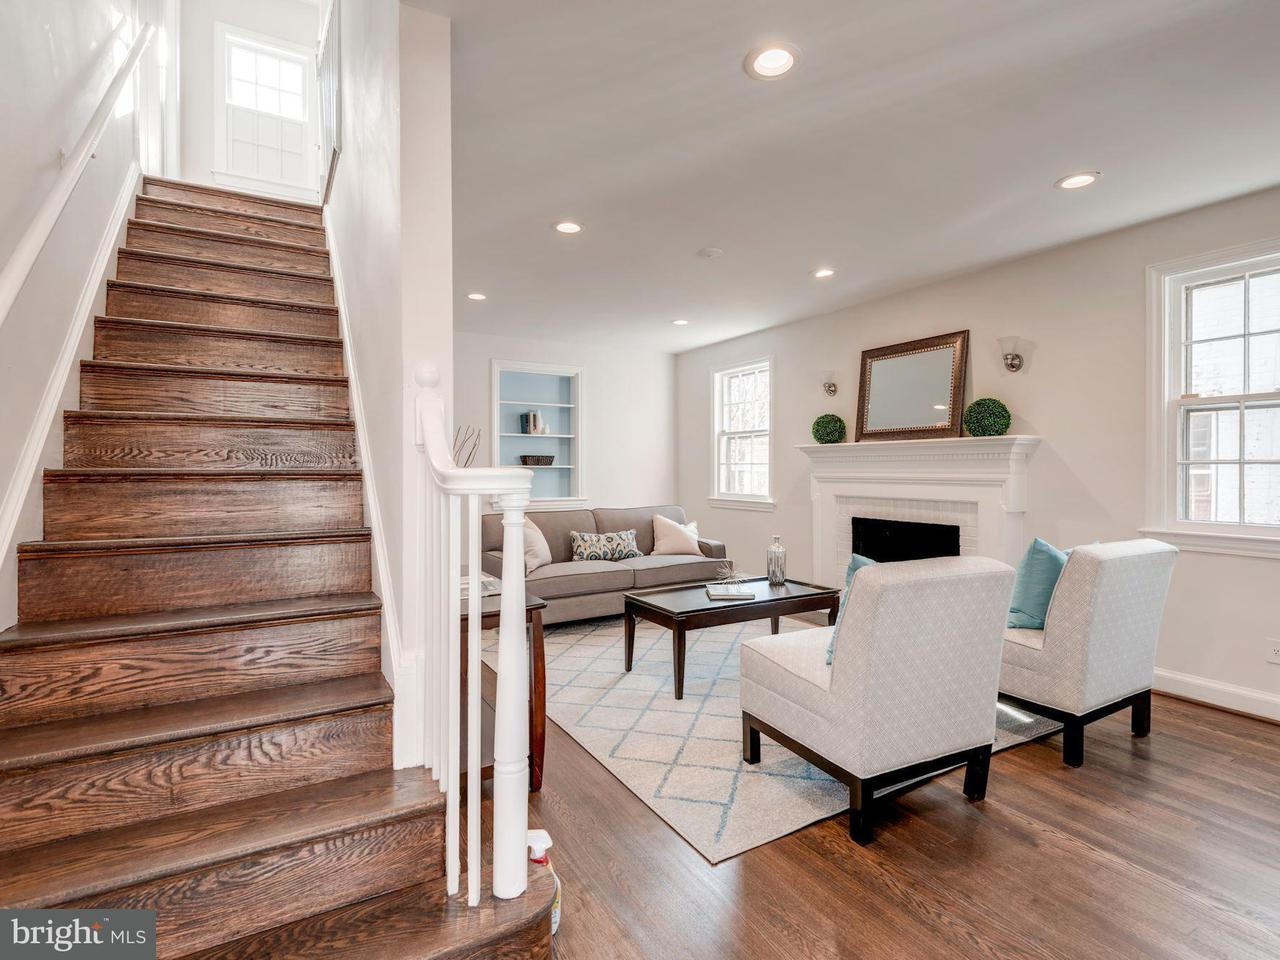 Single Family Home for Sale at 1364 VAN BUREN ST NW 1364 VAN BUREN ST NW Washington, District Of Columbia 20012 United States